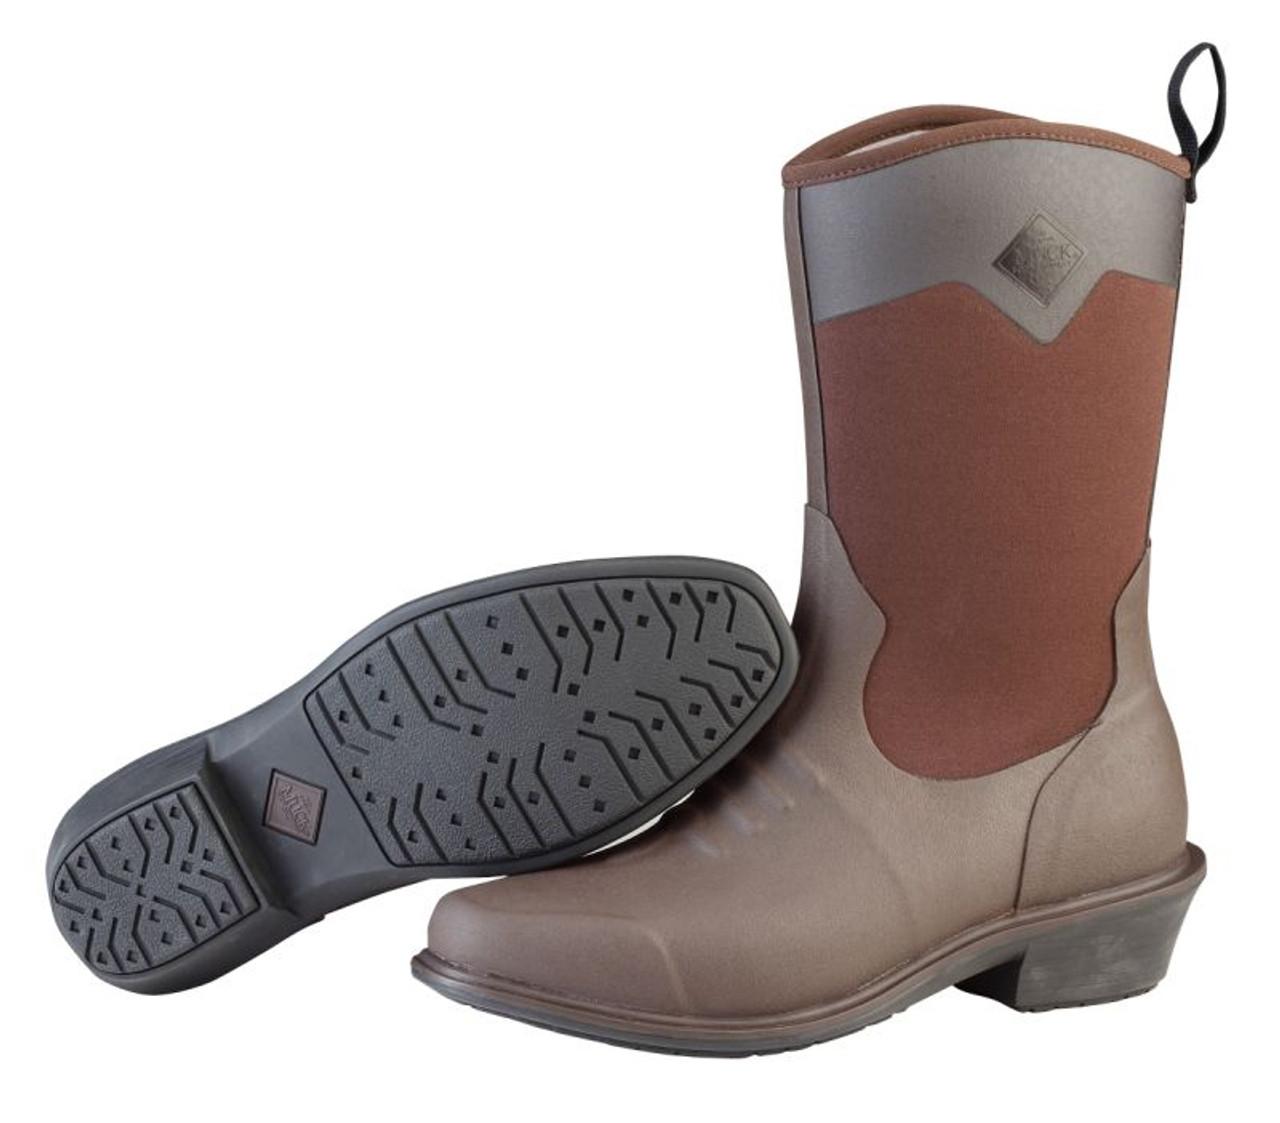 Would you wear a pair of $160 suede boots in this muck? The